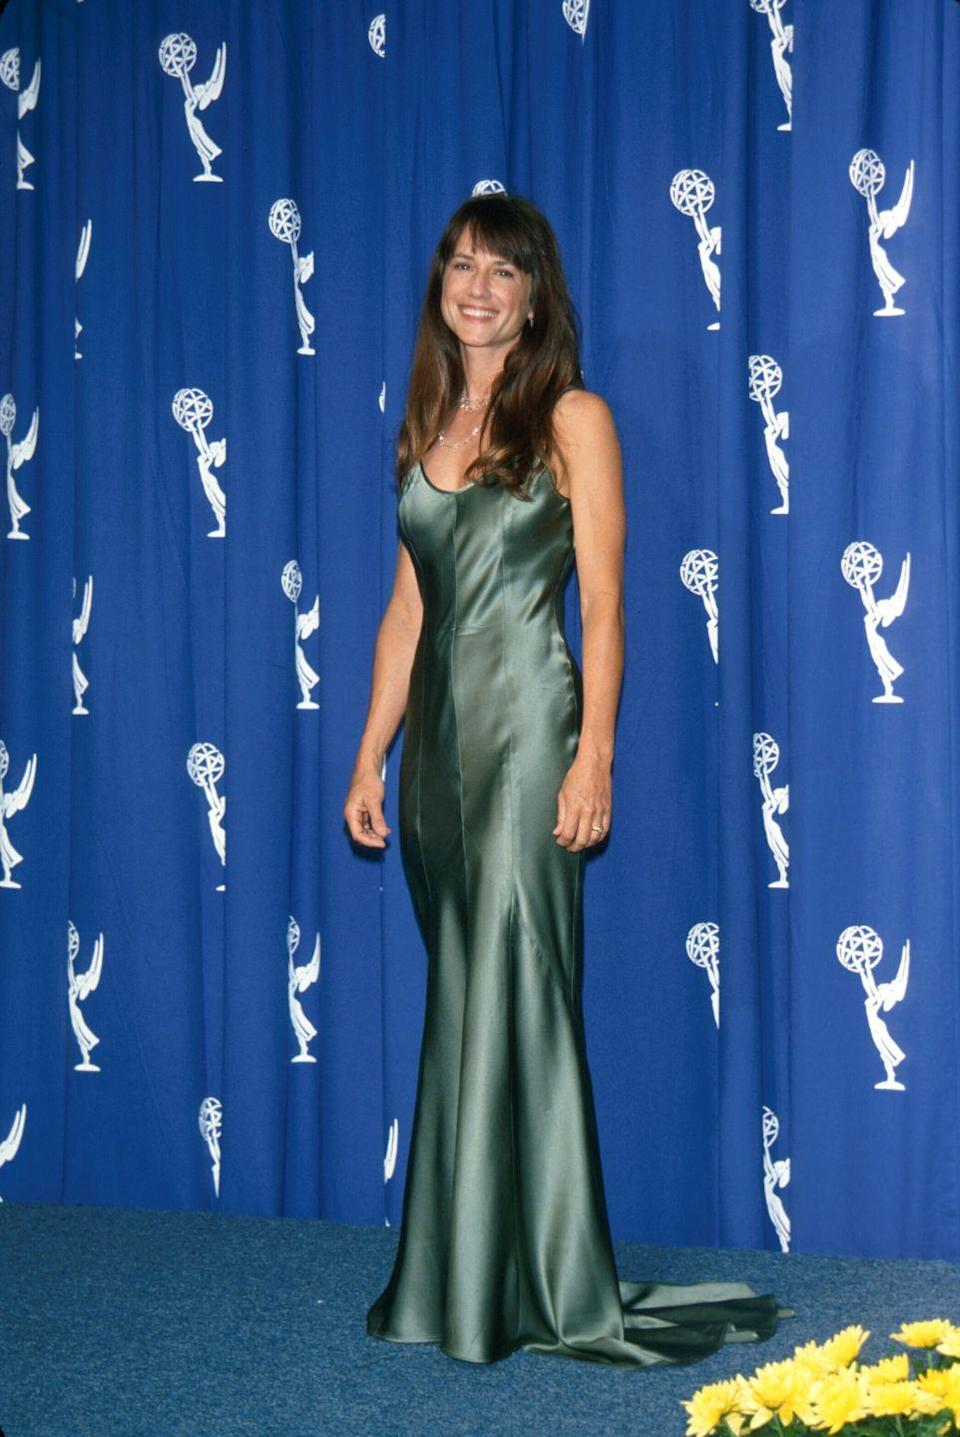 <p>Speaking of mermaid-esque looks, there was also this sea-green gown Hunter wore to the '94 awards. Complete with her wavy effortless hair and silver jewelry, it was so memorable. </p>